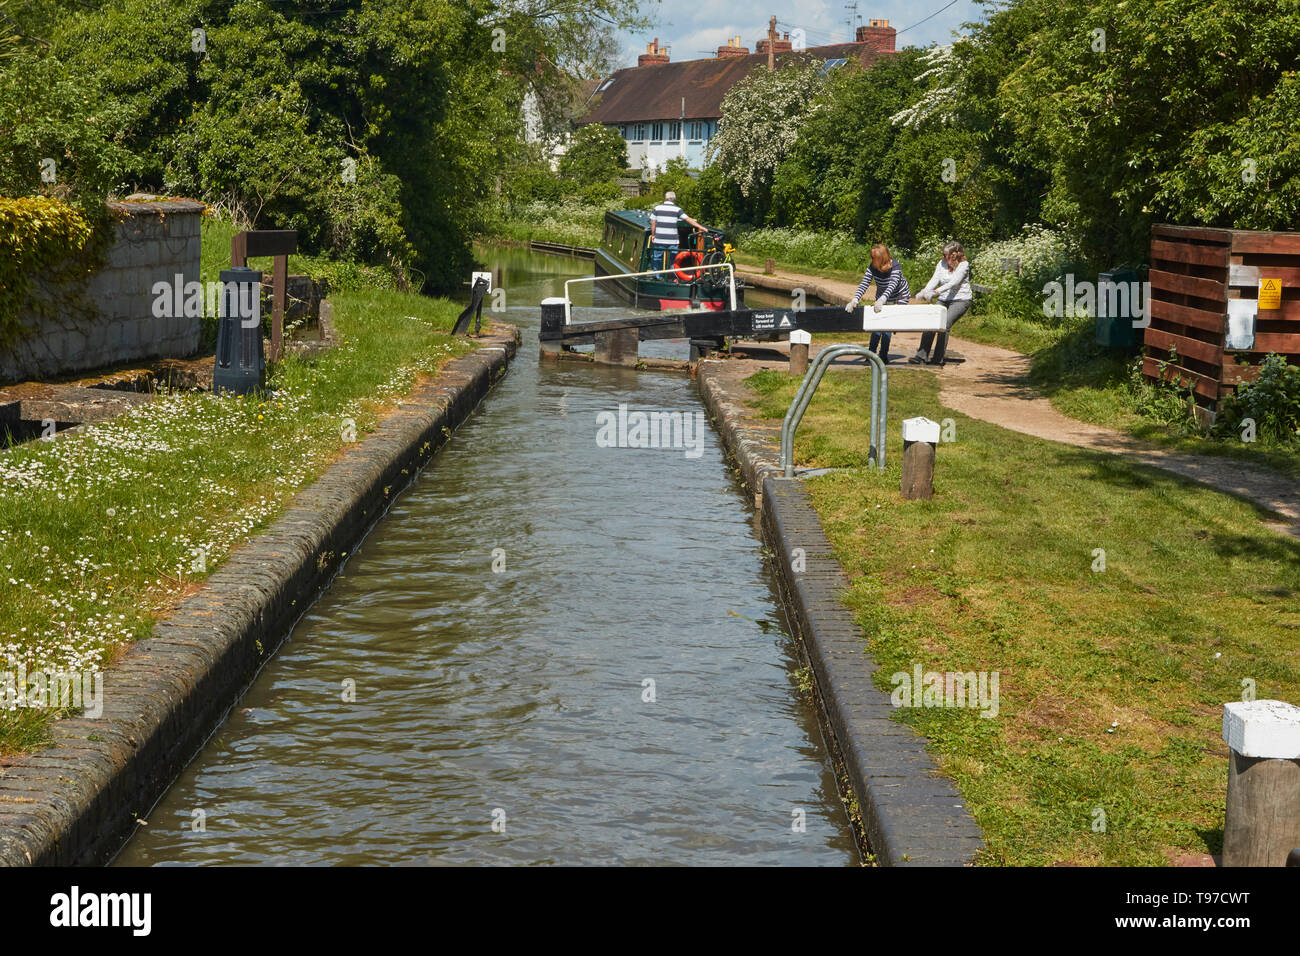 Narrowboat on the Stratford-on-Avon canal near the town centre, Warwickshire, England, United Kingdom, Europe Stock Photo